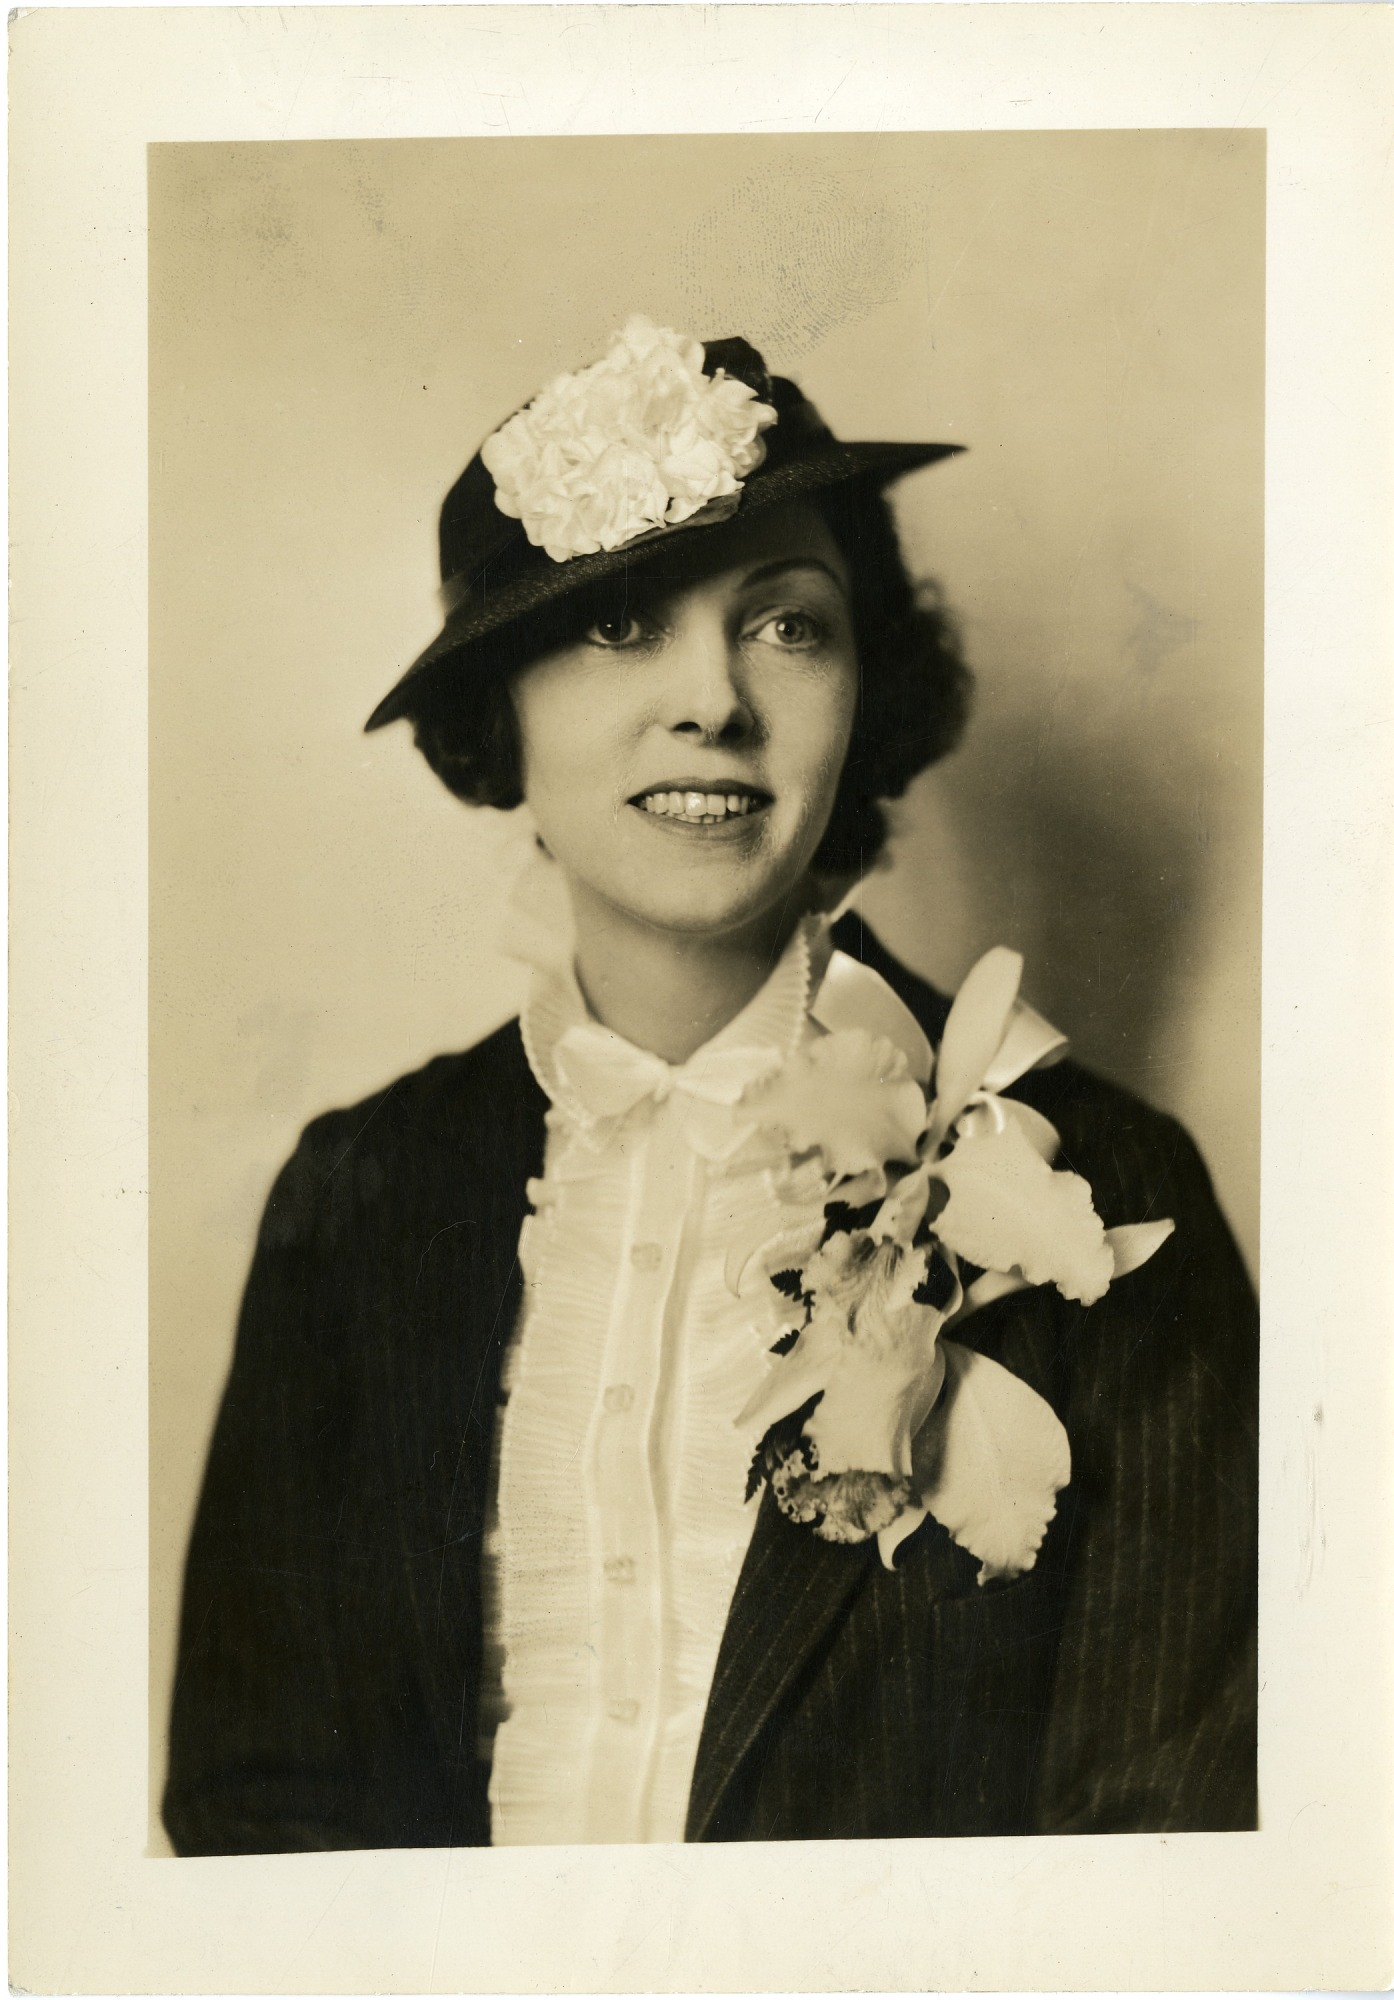 Jane Stafford (1899-1991), Smithsonian Institution Archives, SIA Acc. 90-105 [SIA2009-0885].